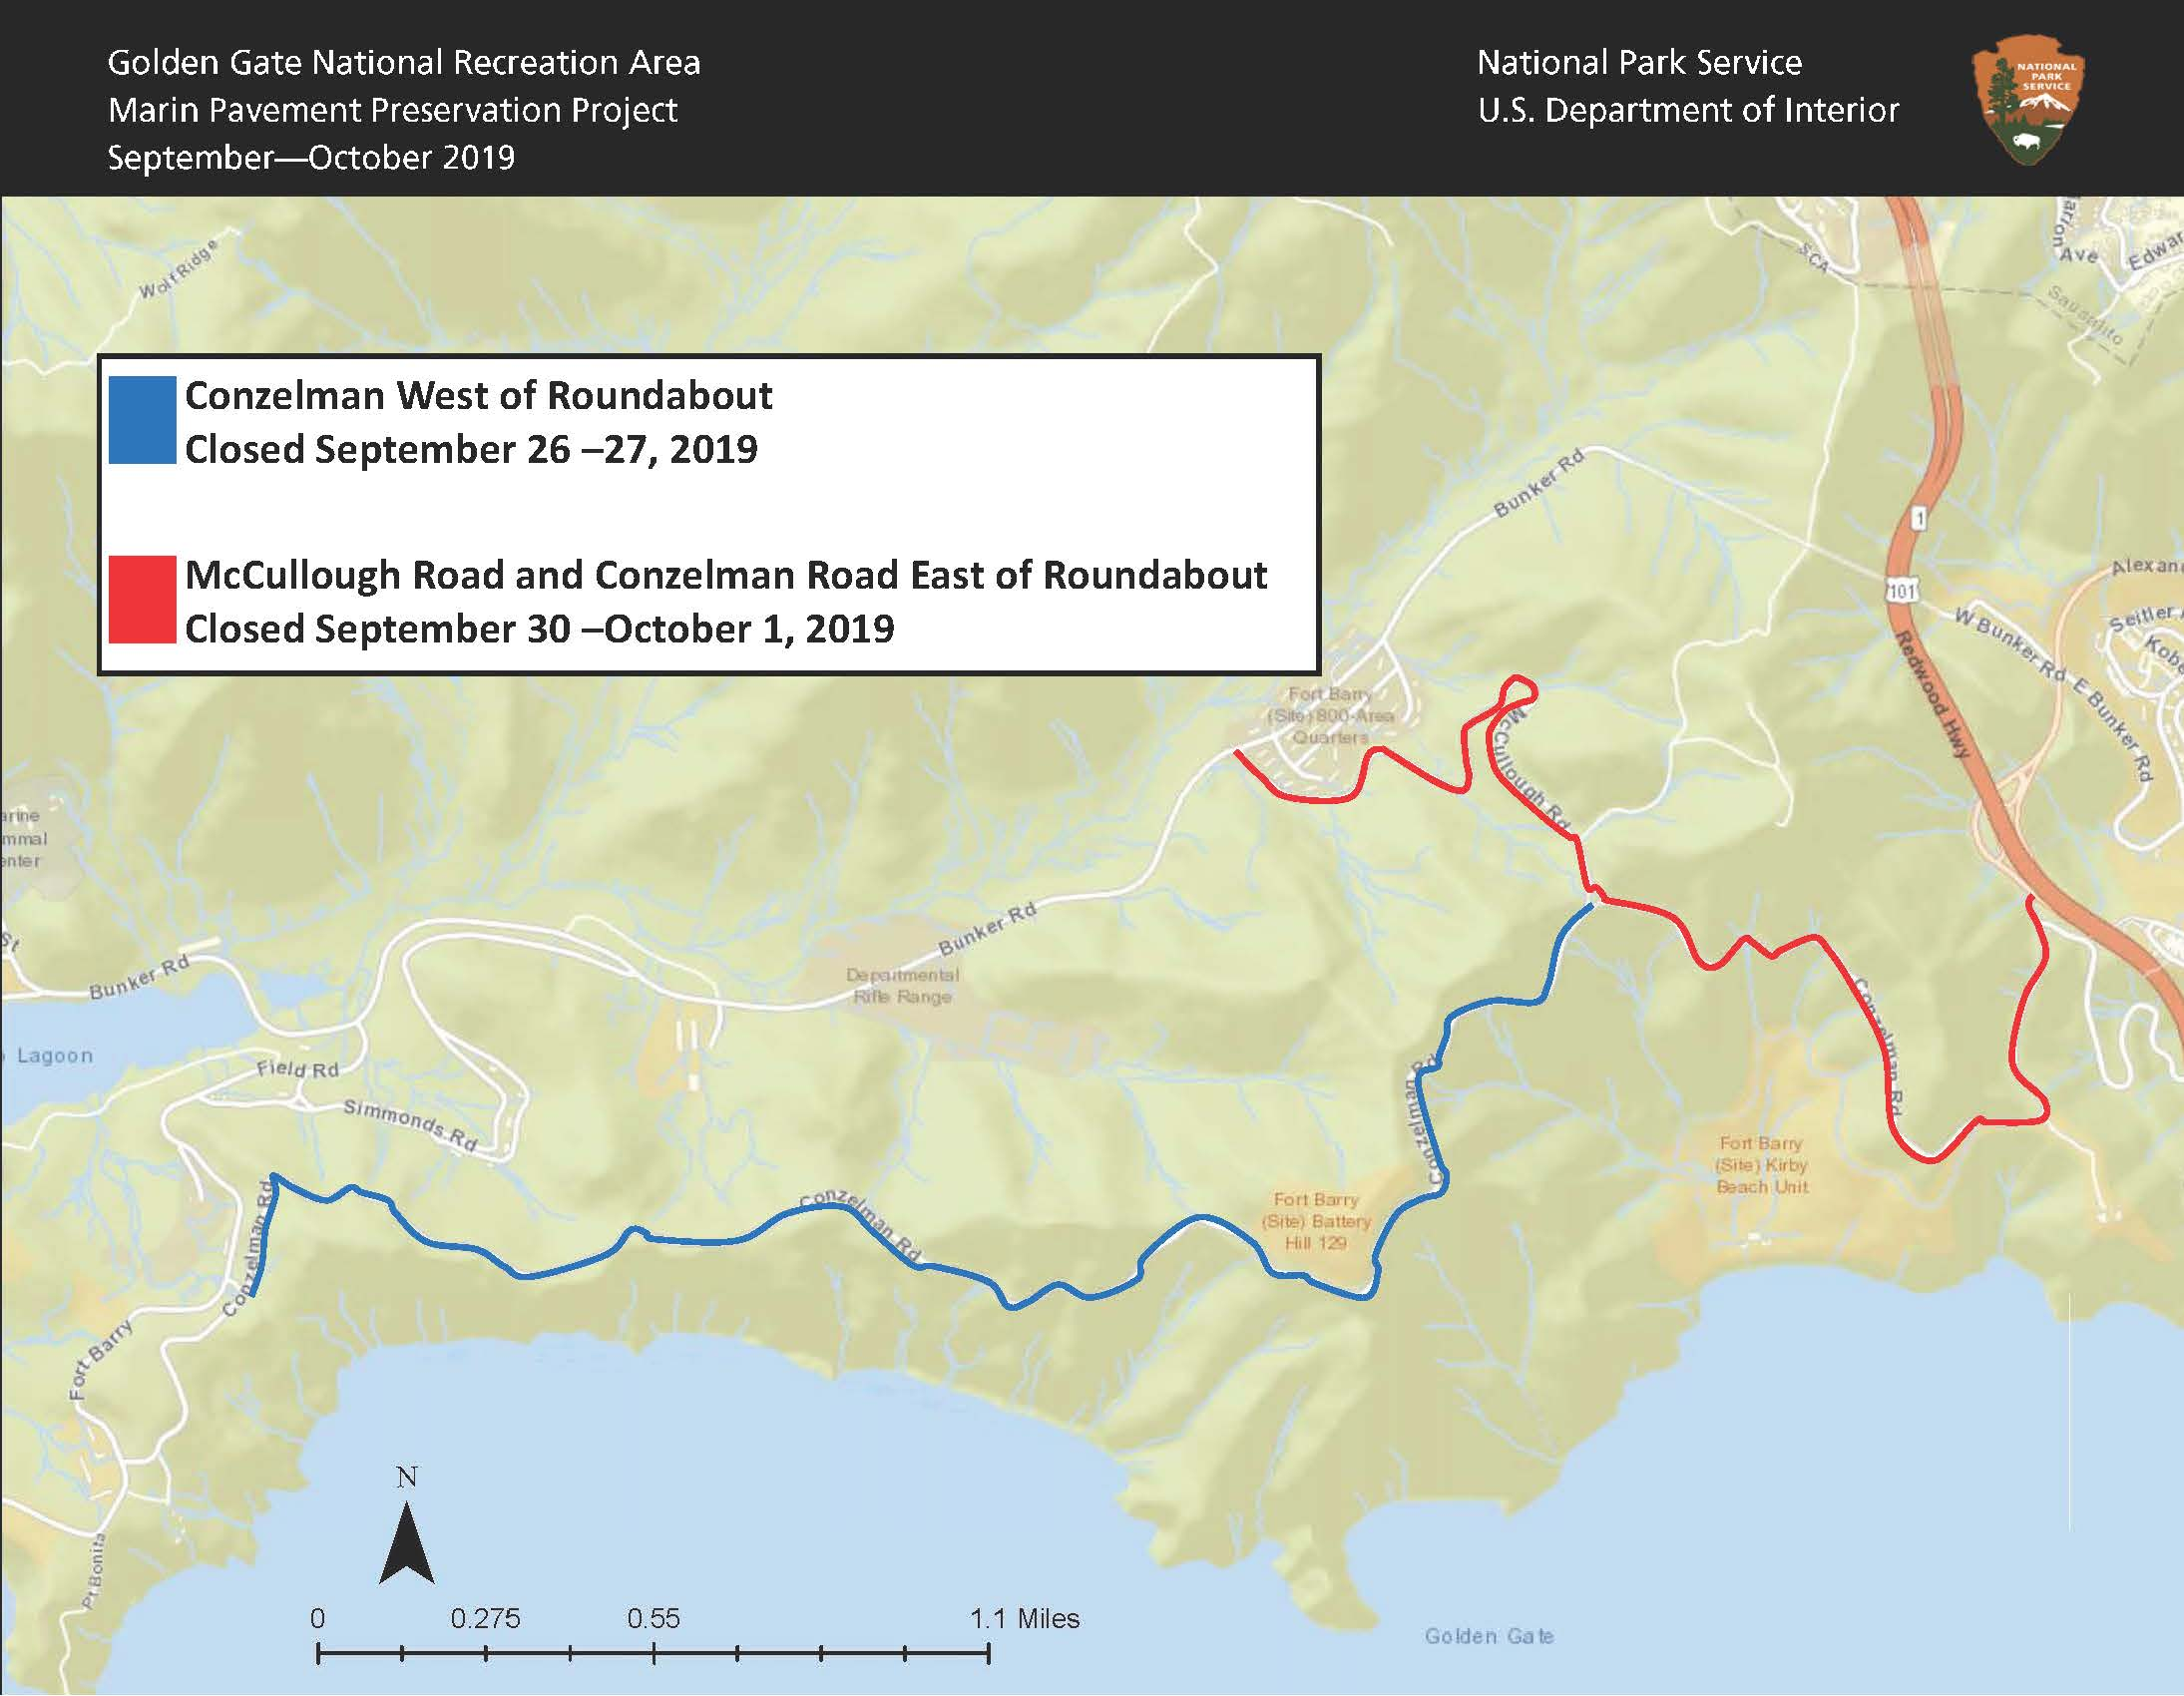 Map of upcoming closed areas in the Marin Headlands show McCullough and Conzelman Roads east of roundabout closed September 30 and October 1 in red. The blue portion identifies Conzelman Road west of roundabout closed on September 26 and 27.